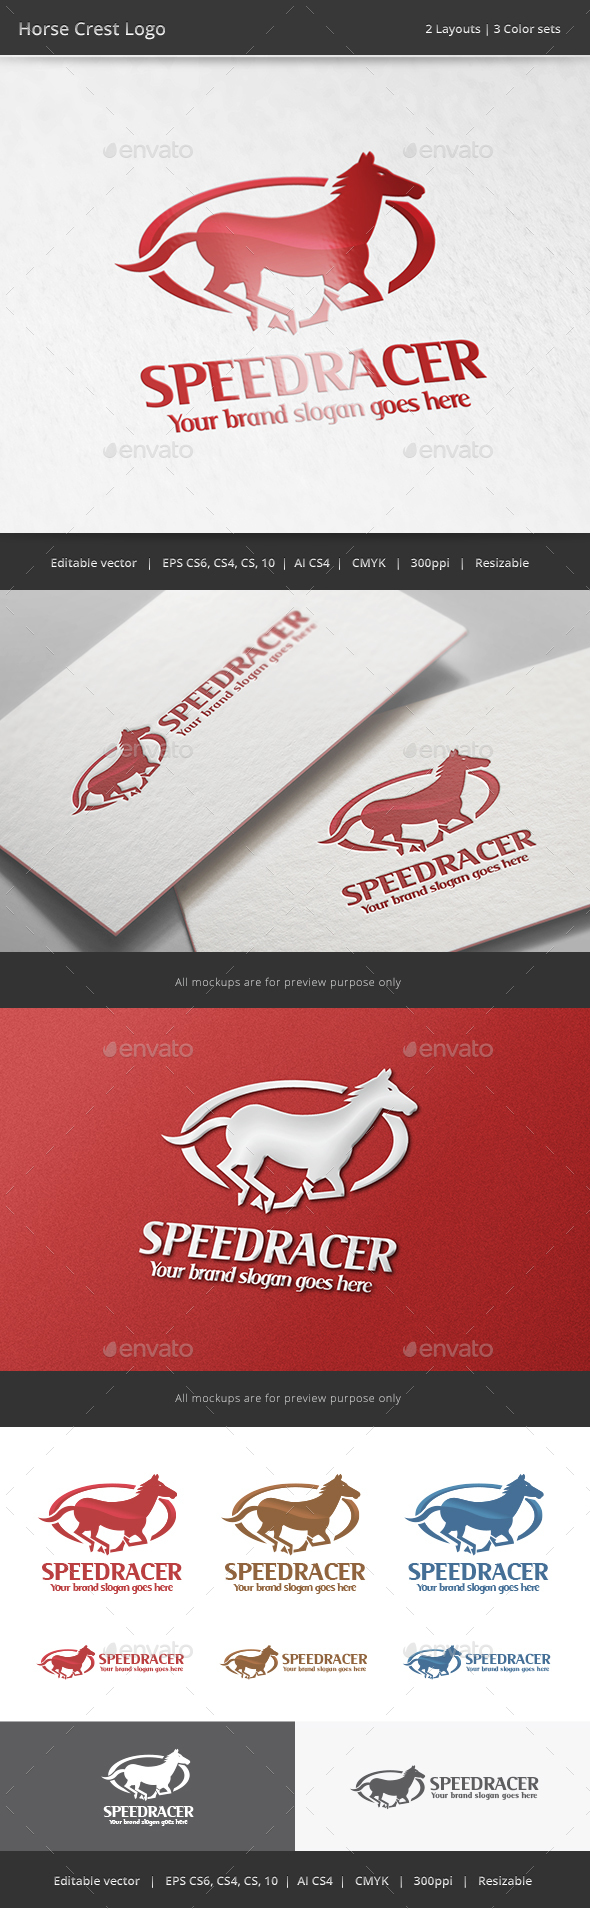 Horse Crest Logo - Animals Logo Templates